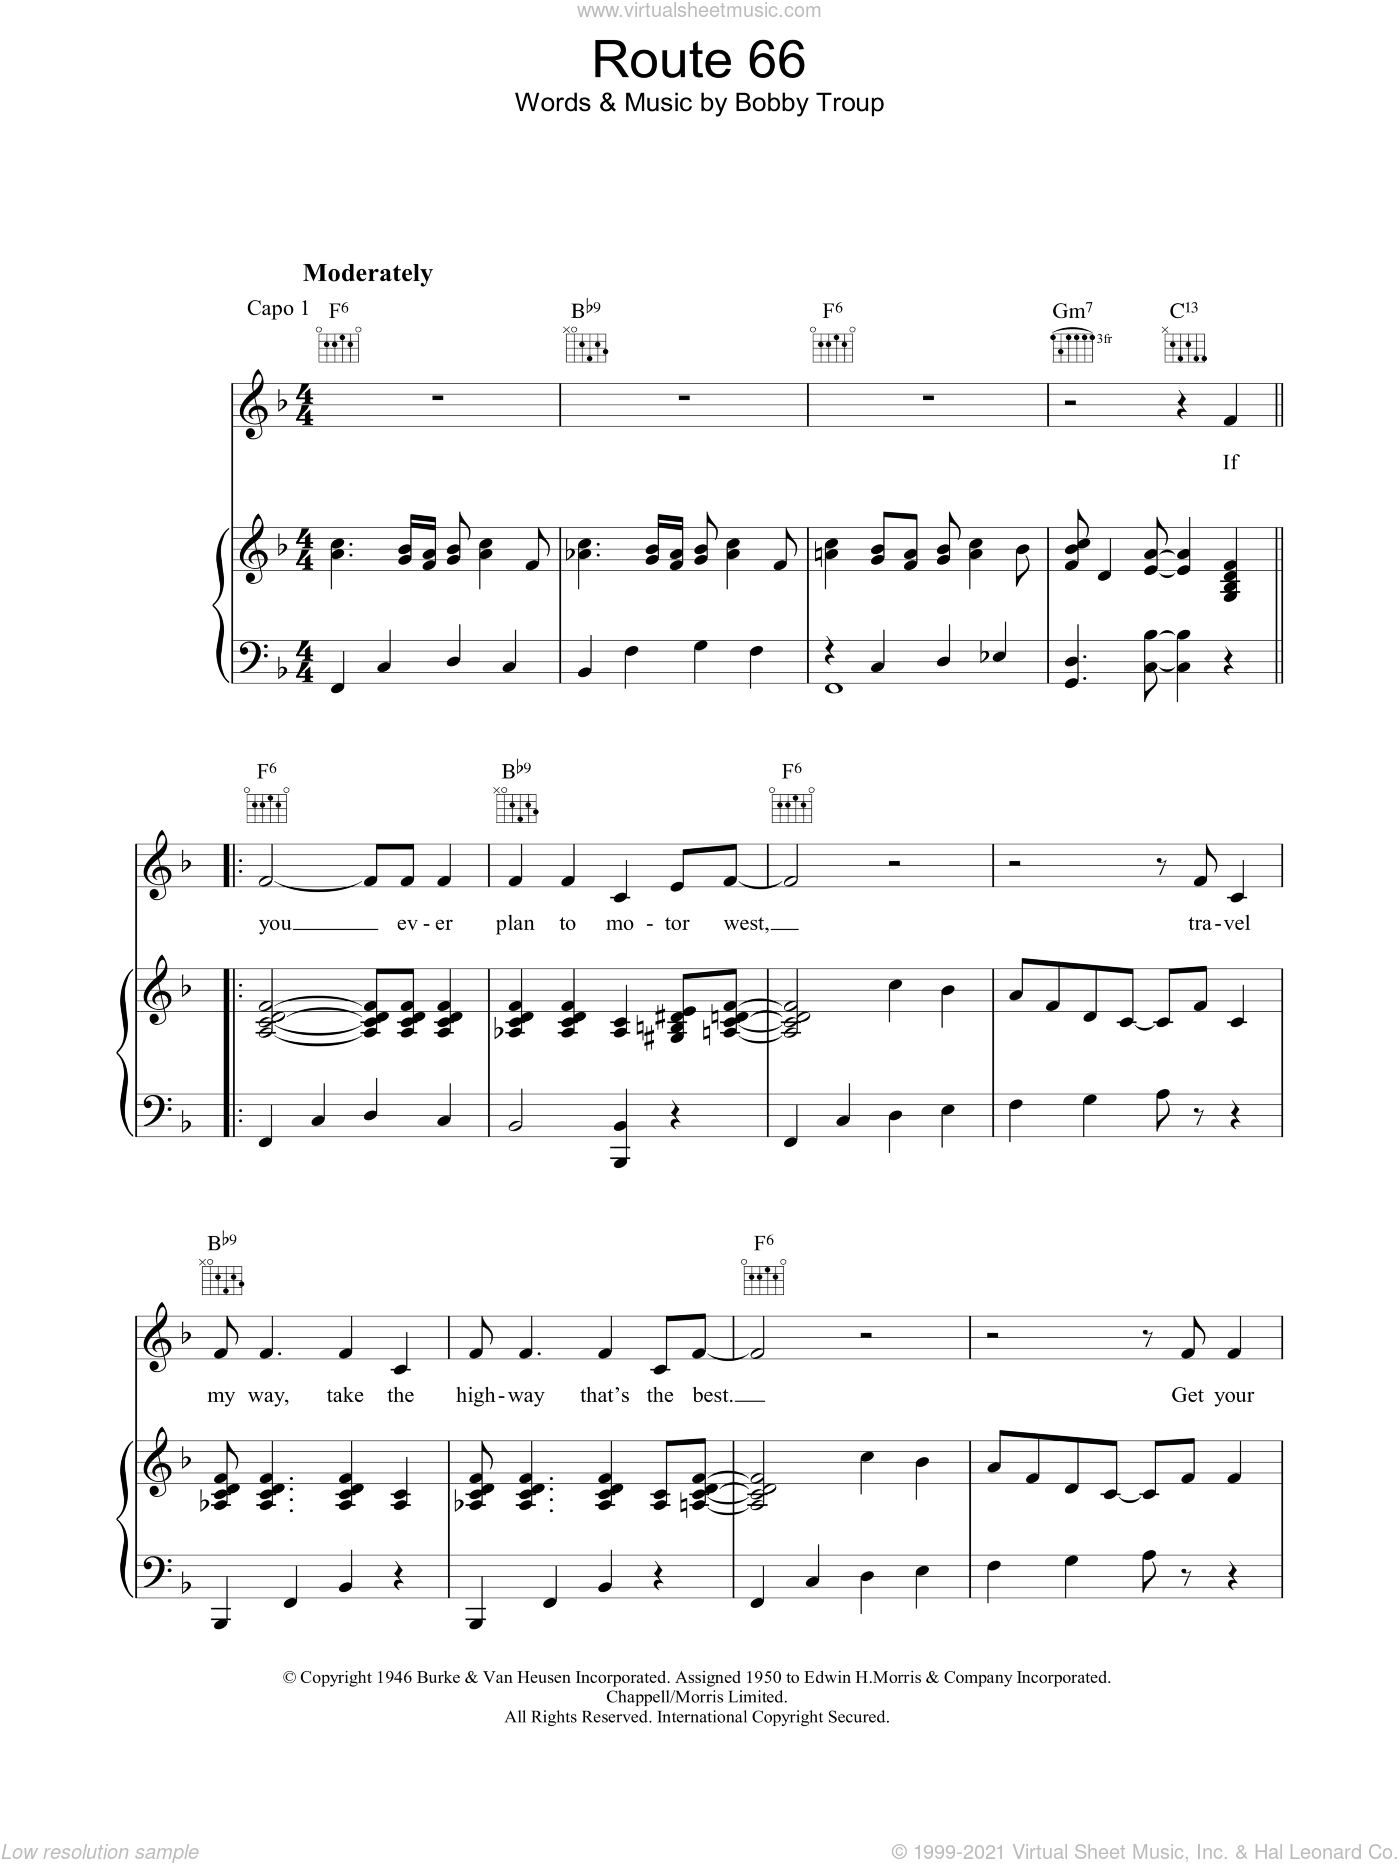 Route 66 sheet music for voice, piano or guitar by Bobby Troup